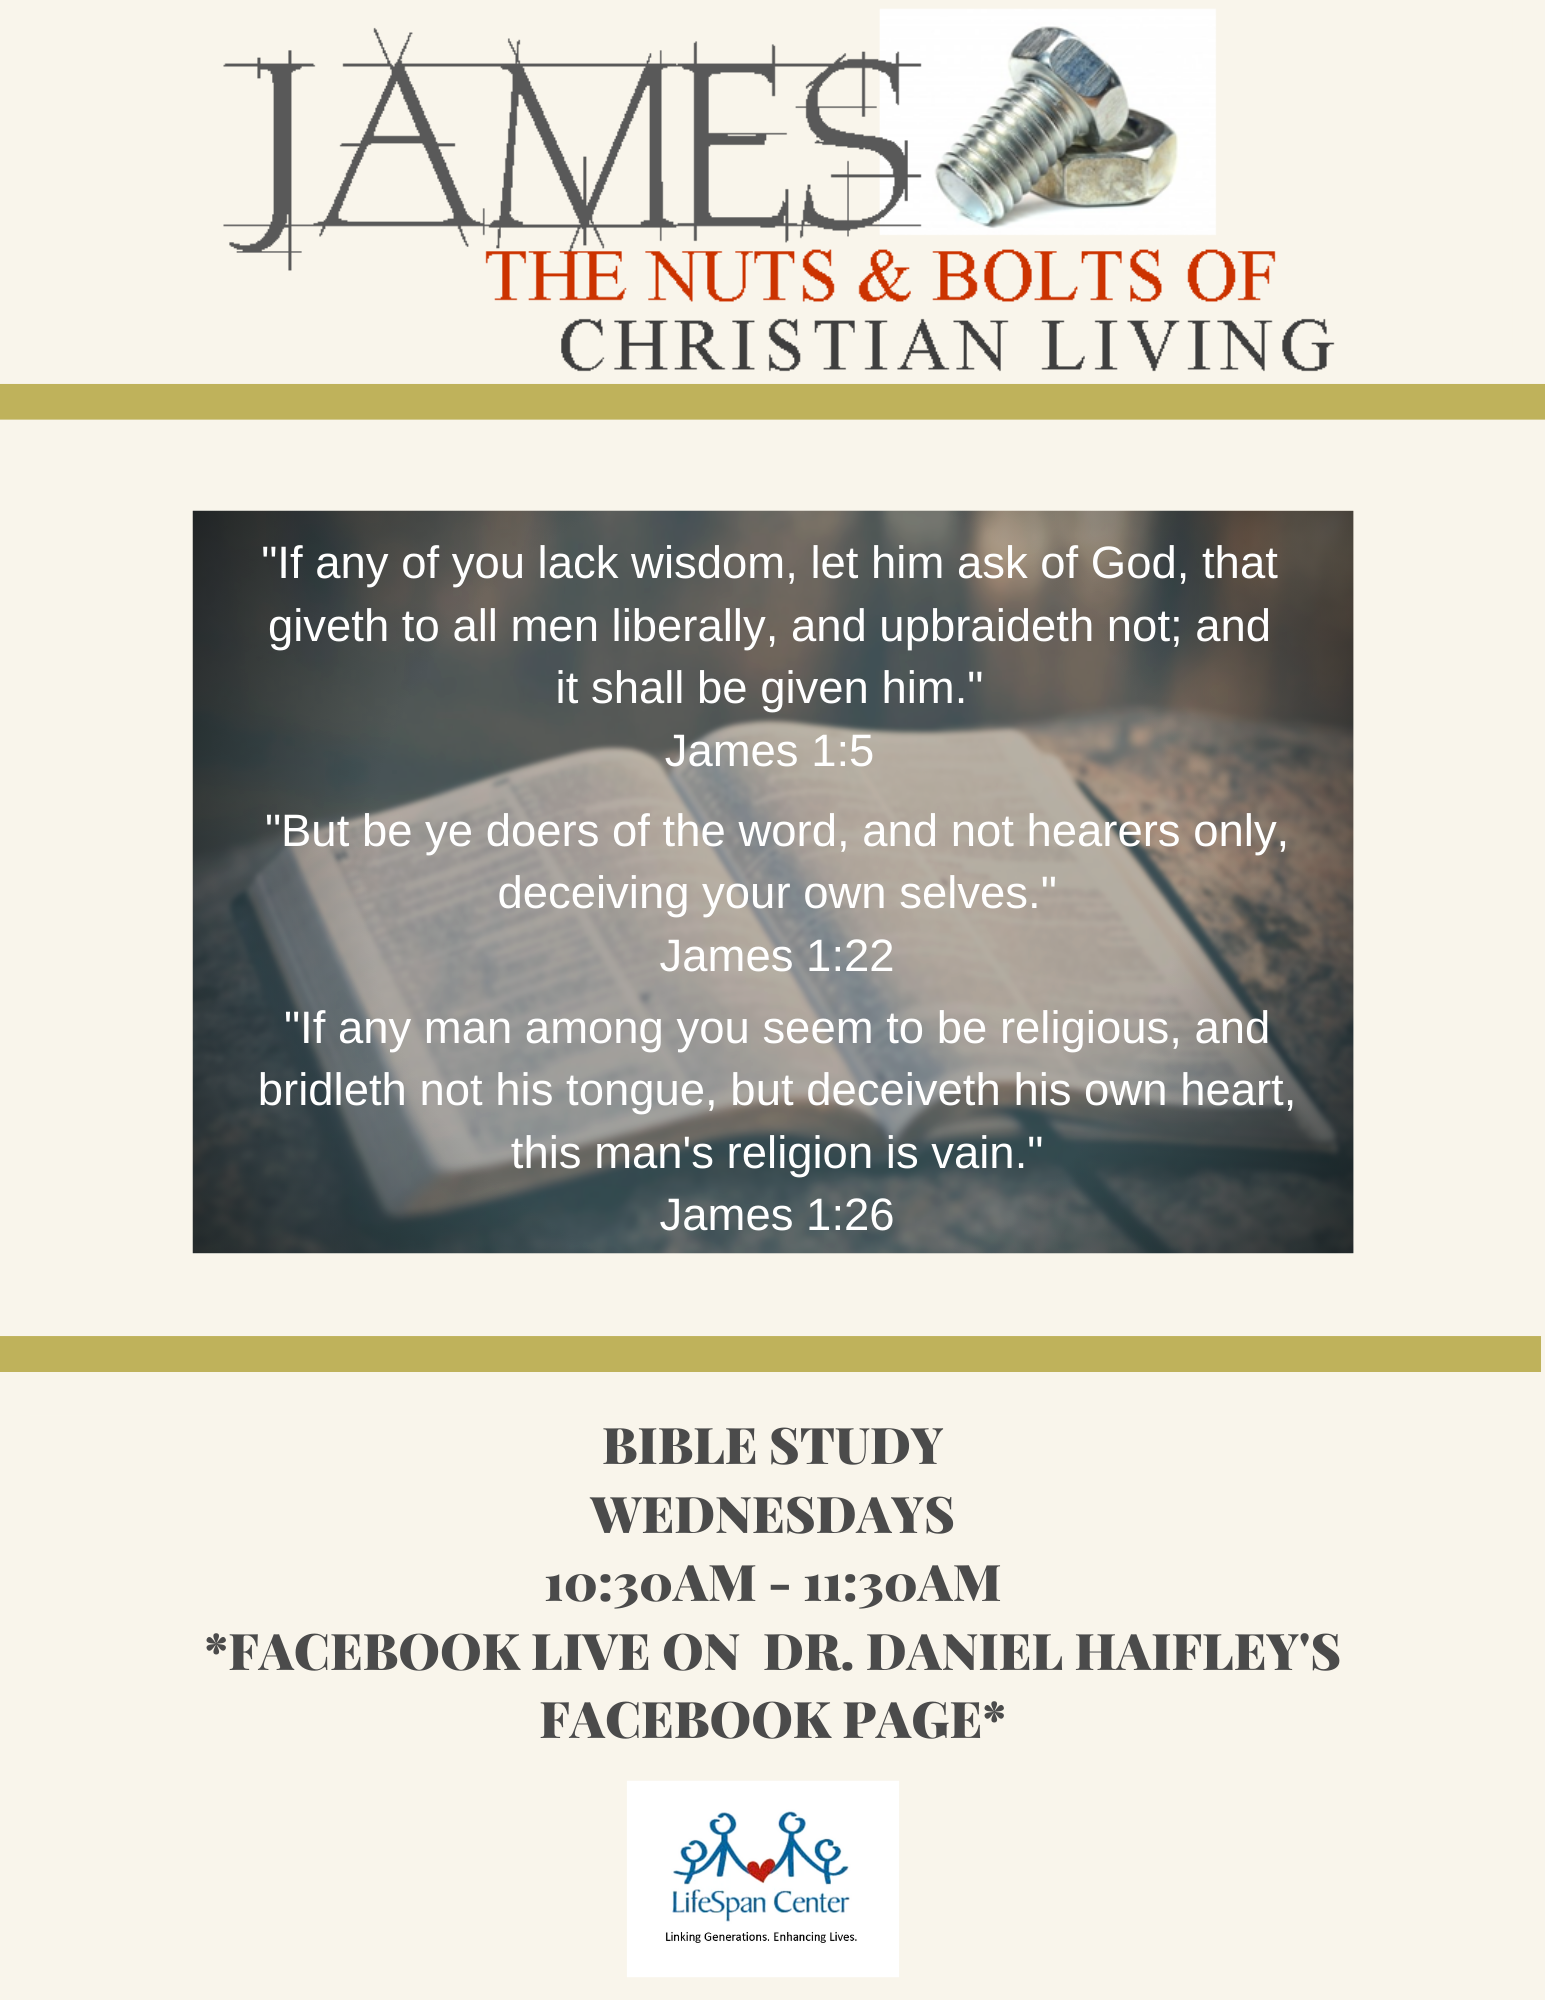 Bible_Study__Book_of_27527.png